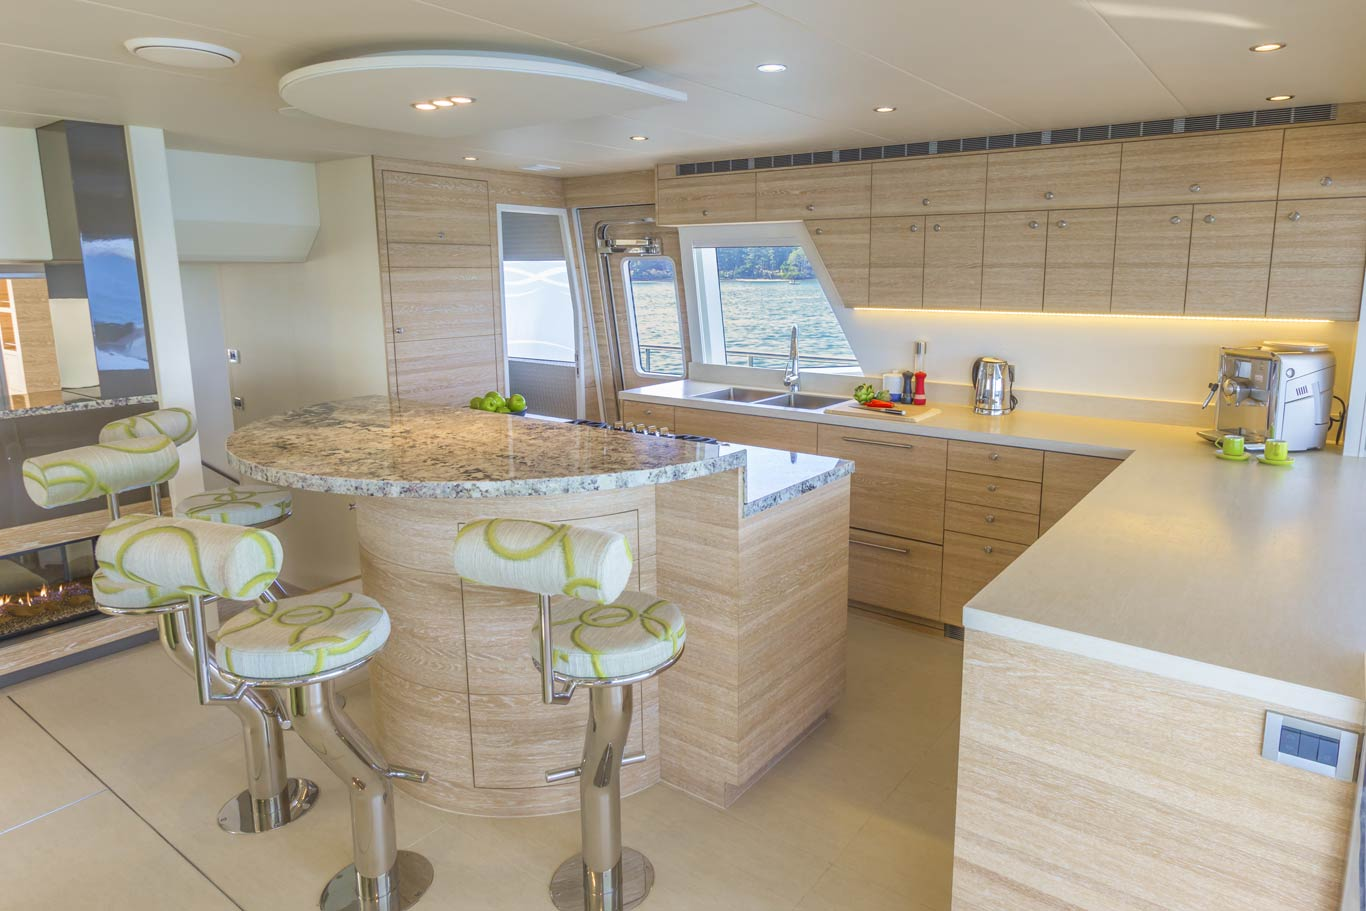 Samaras galley is equipped for entertaining, being located at the heart of the salon fosters the social atmosphere